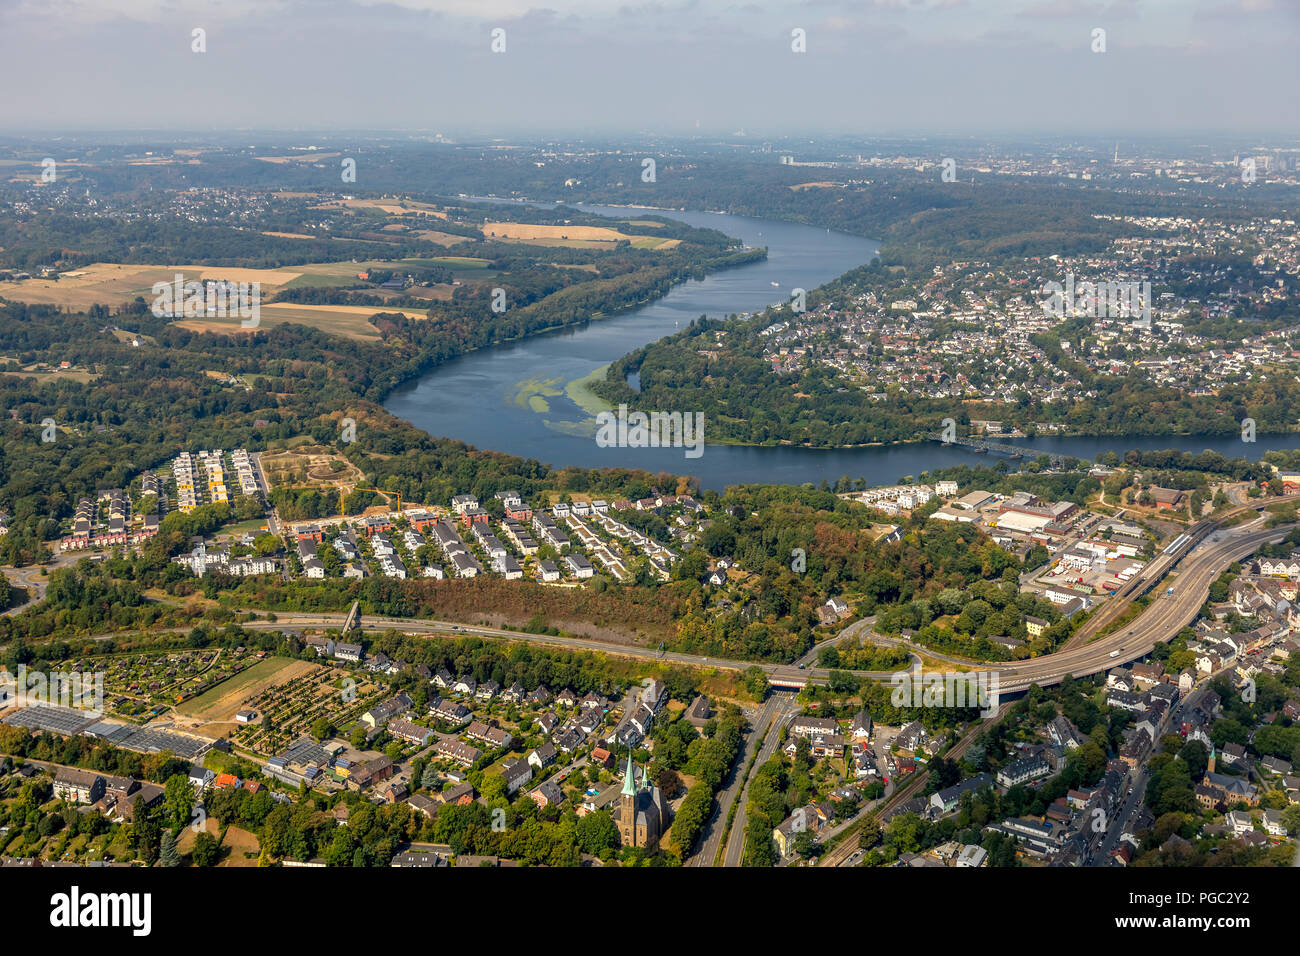 Dilldorfer height, new construction area in the bend of the Baldeneysee, Allbau Essen, Dilldorf, Essen, Ruhr Area, Nordrhein-Westfalen, Germany, DEU,  Stock Photo